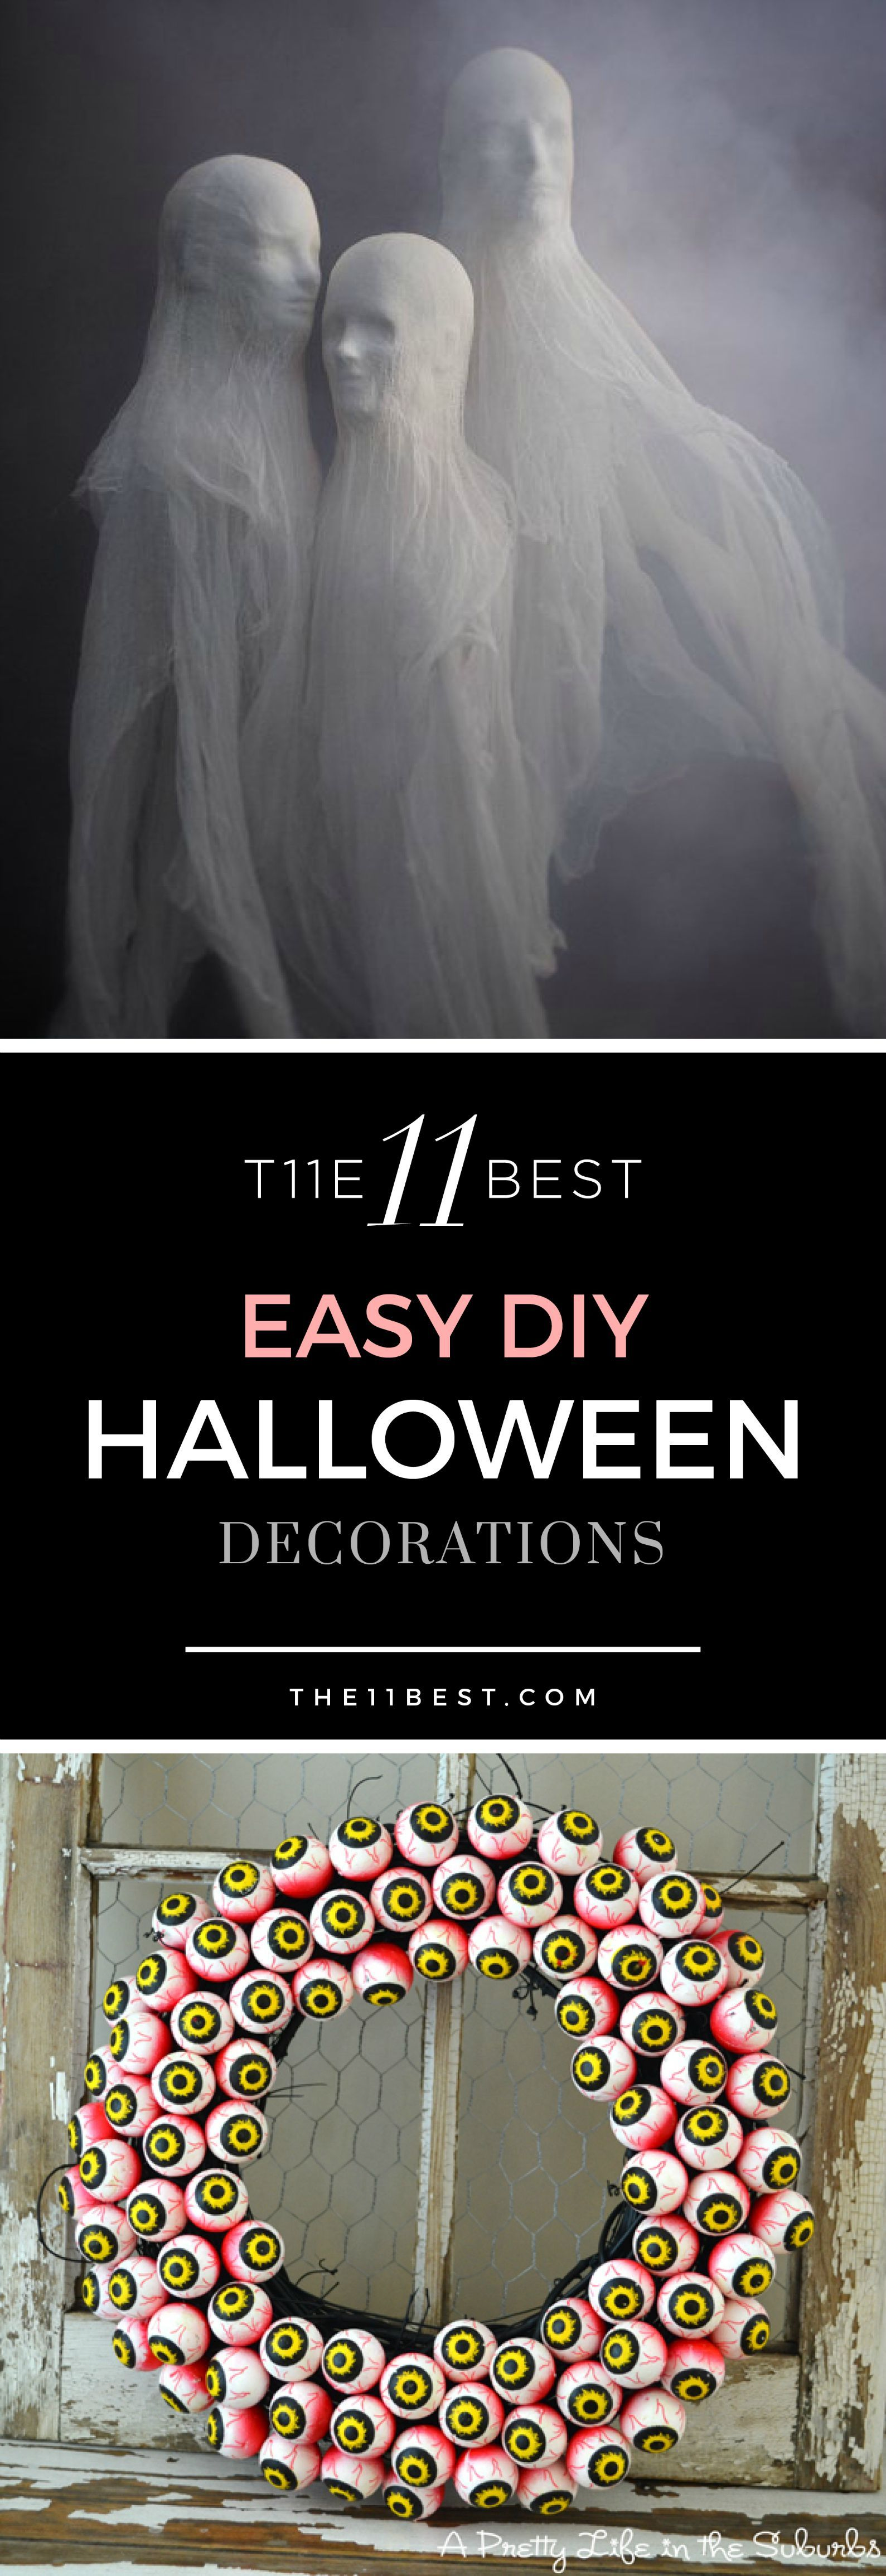 The 11 Best EASY DIY Halloween Decorations DIY Halloween - halloween decorations diy